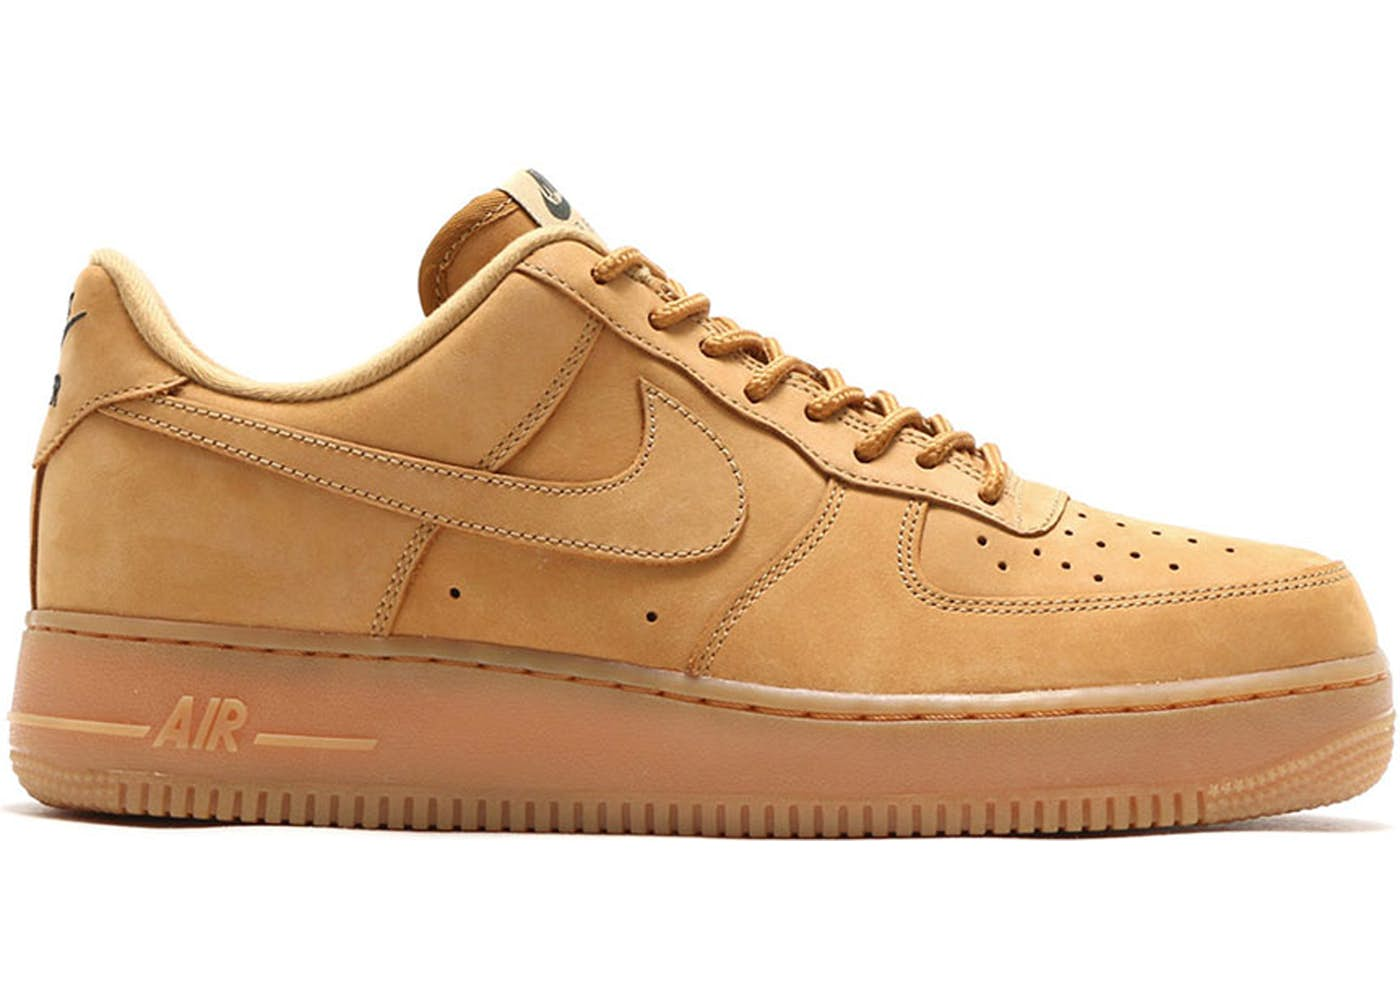 67afc2ade48 ... Mens Air Force 1 Low Flax (2017) 2018 Nike ...